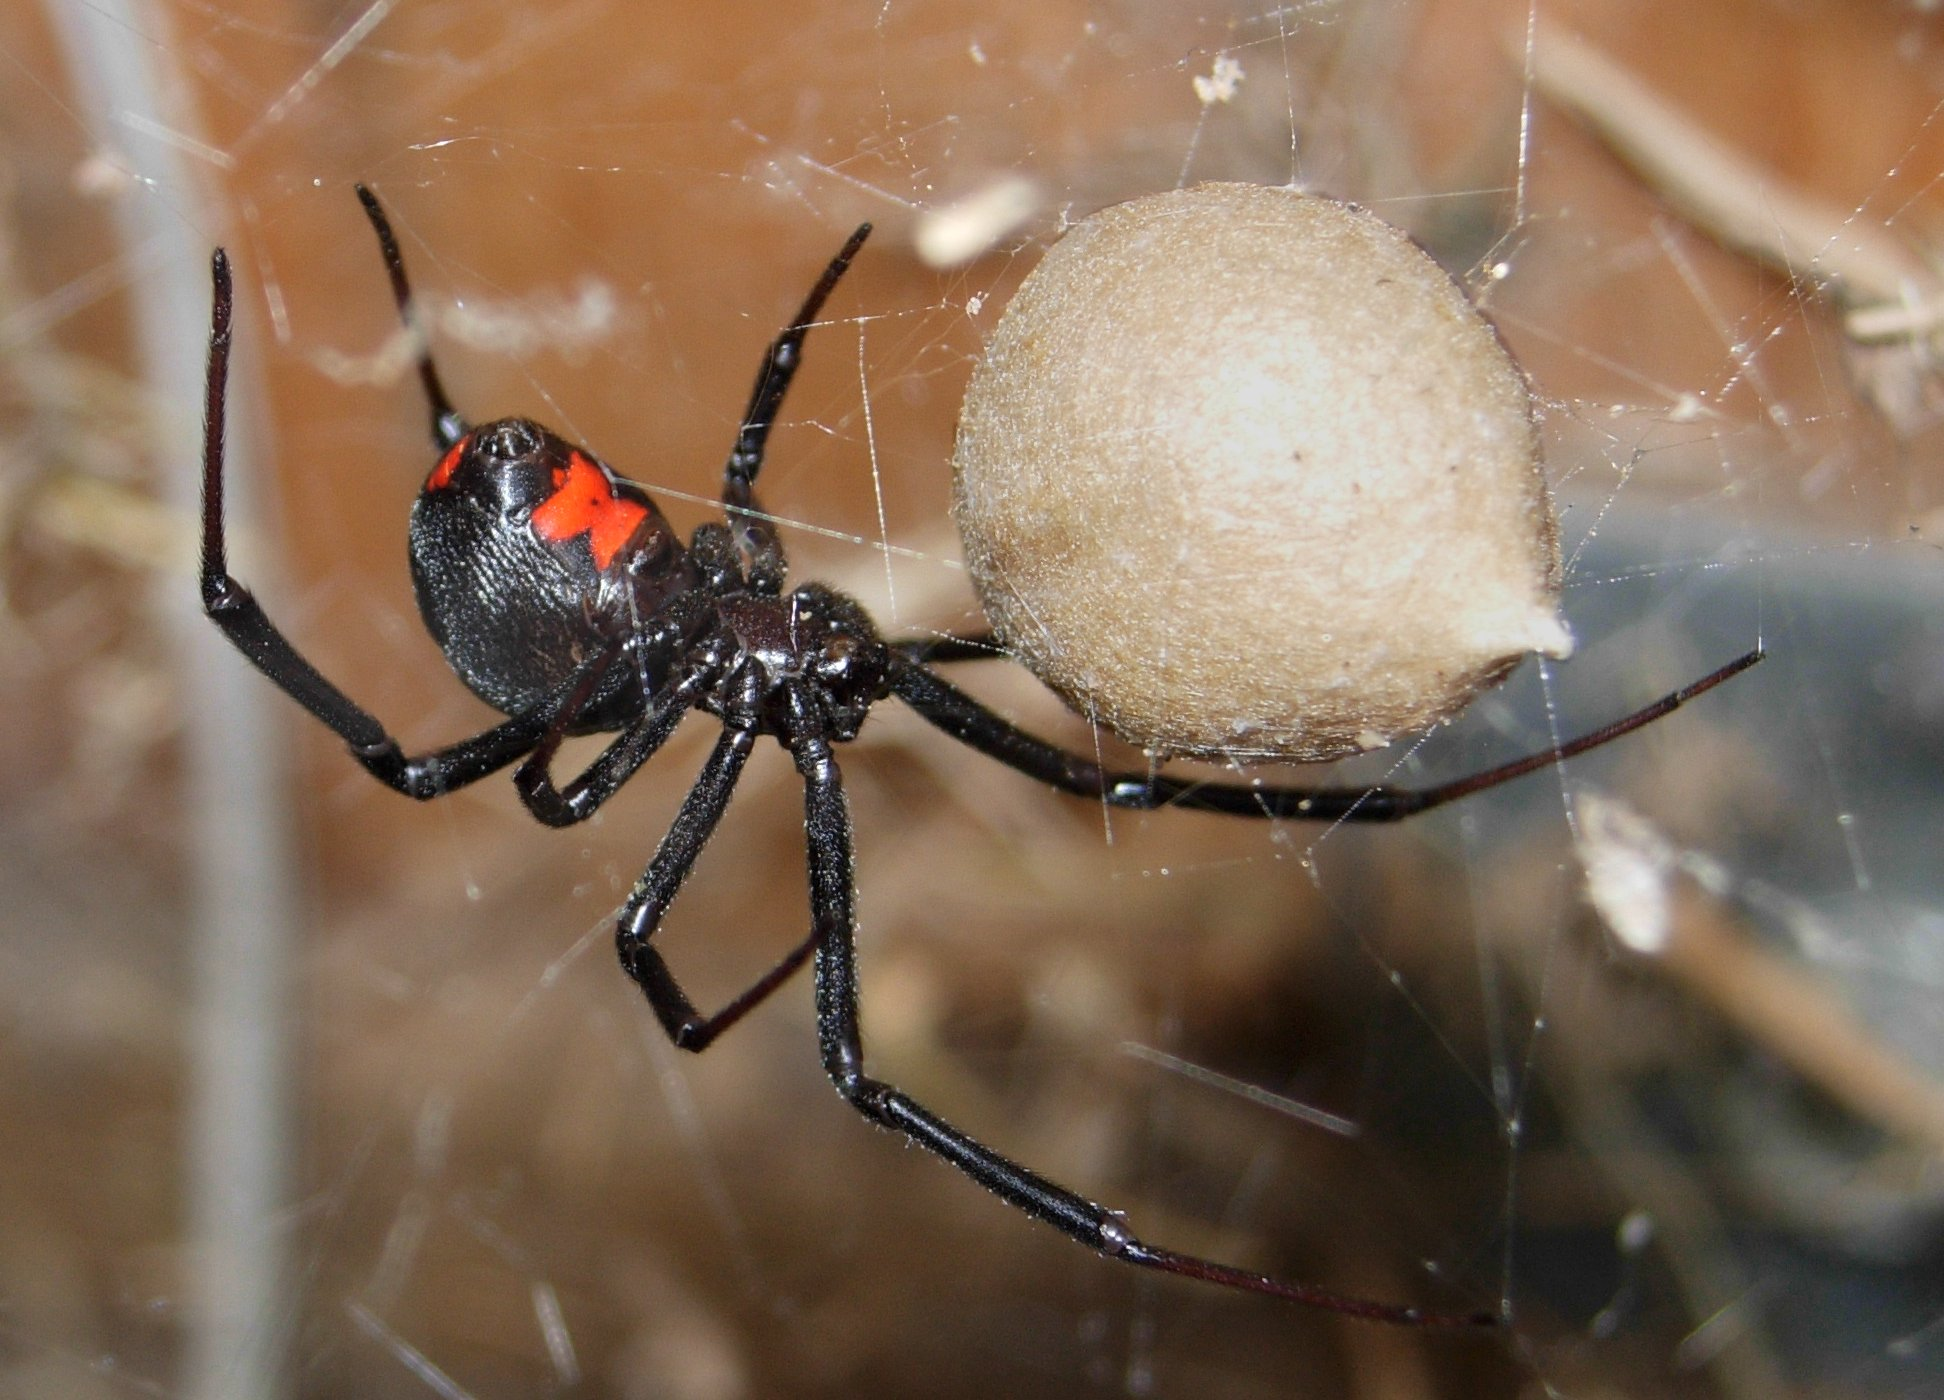 Black widow spider eggs - photo#27